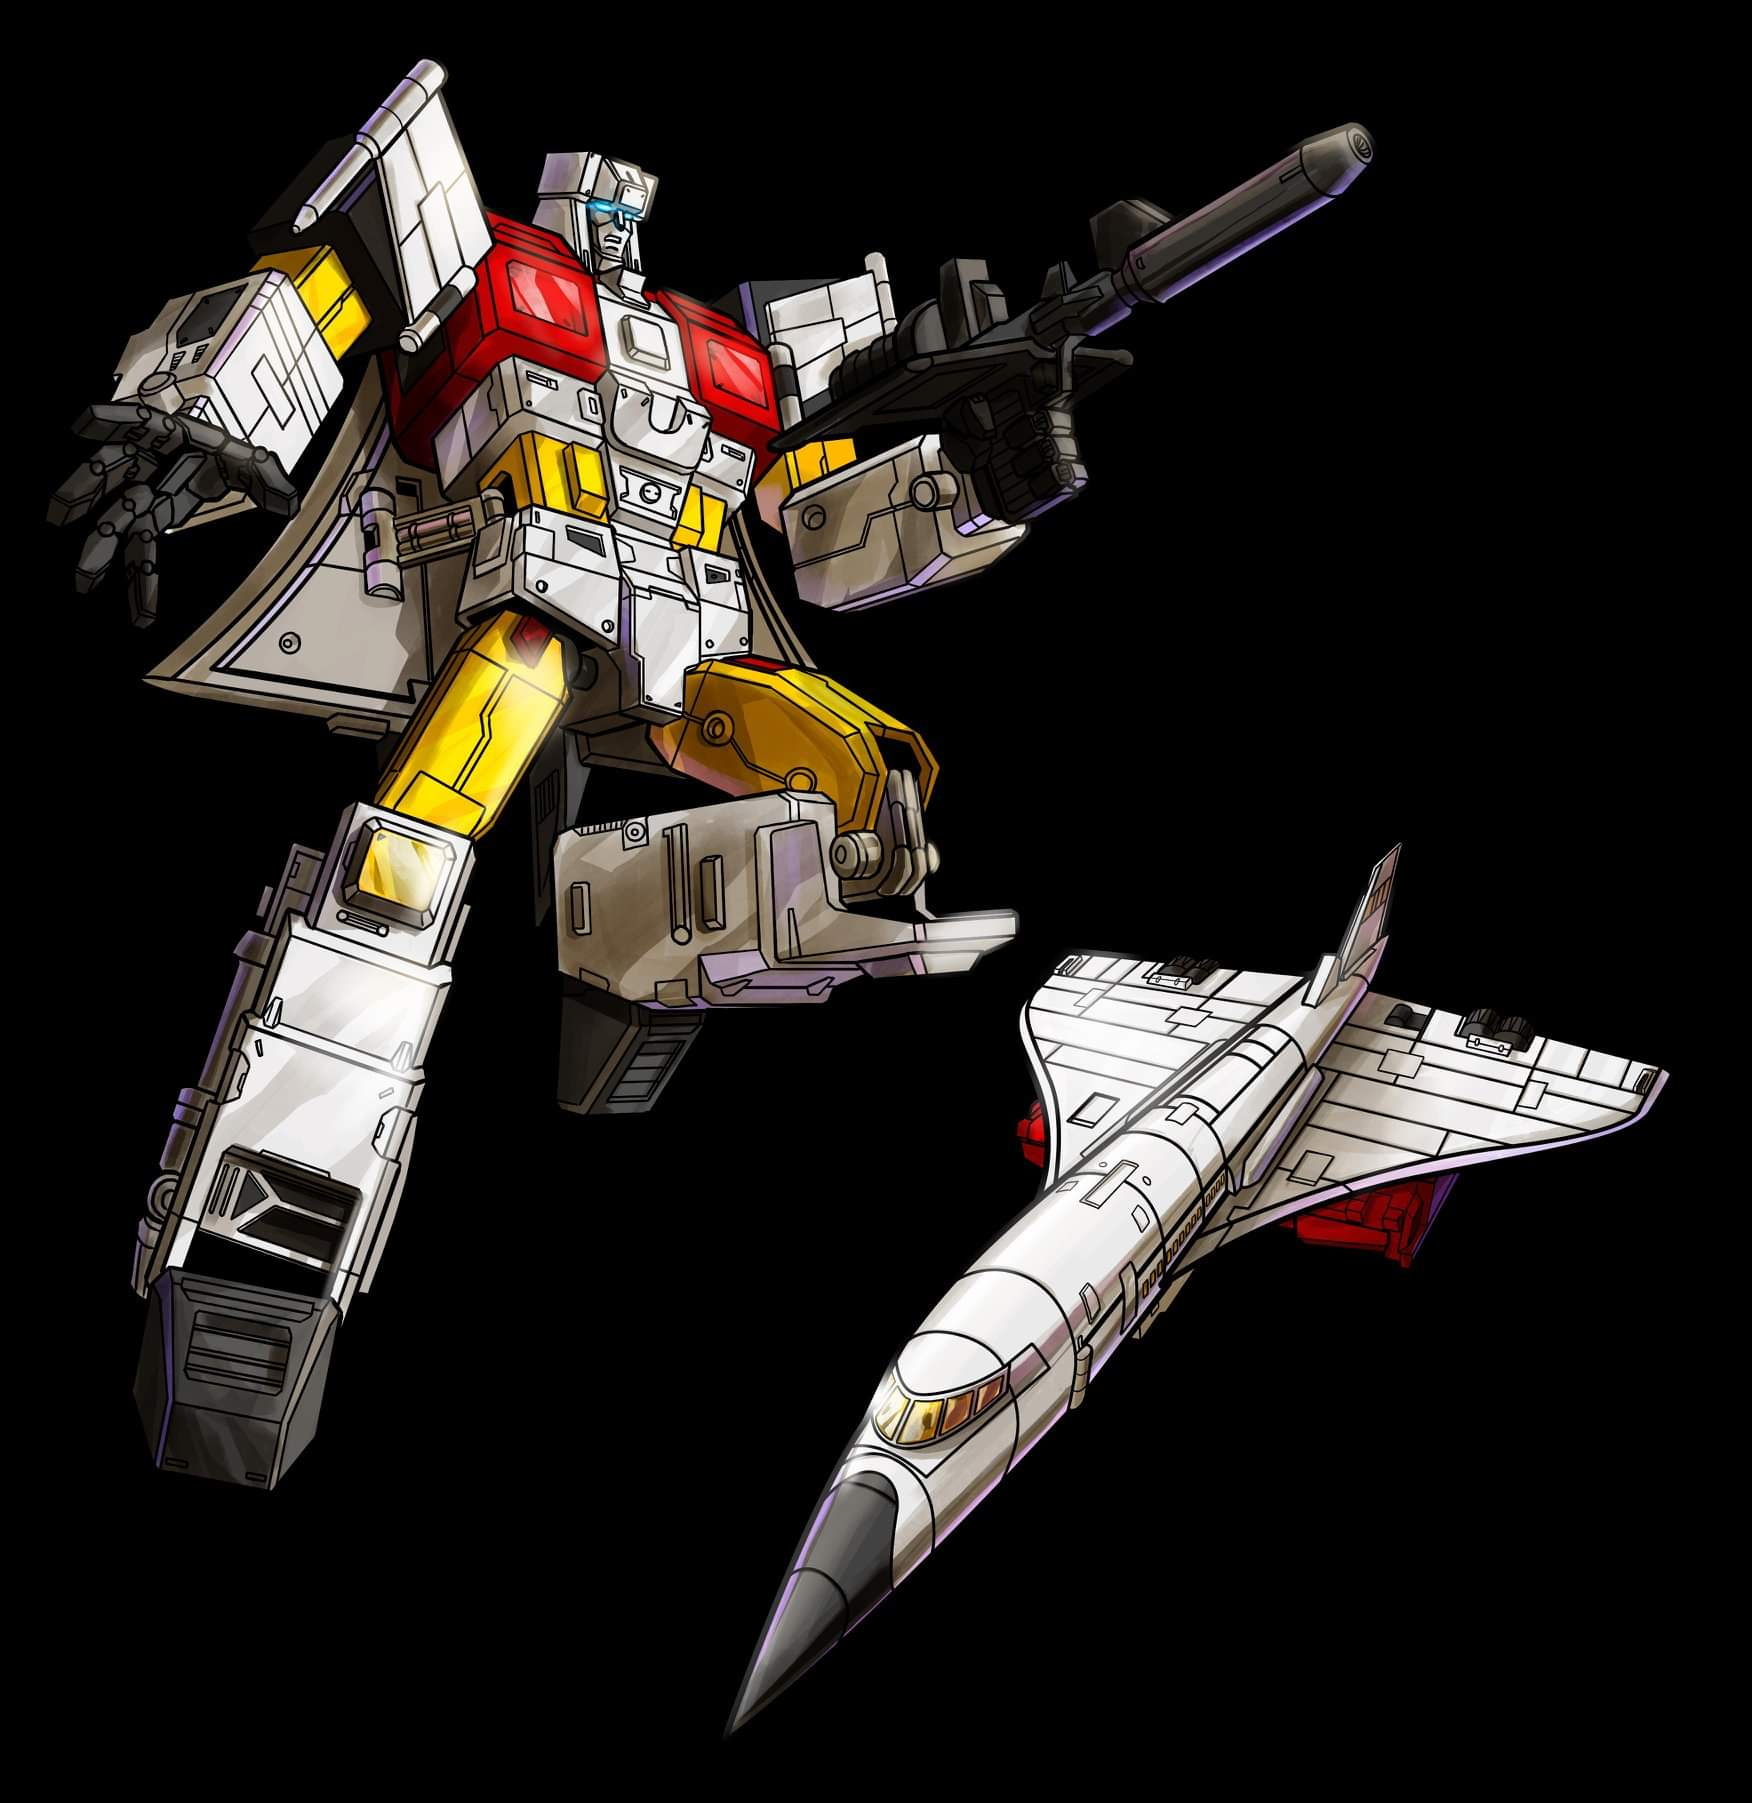 [Fanstoys] Produit Tiers - Jouet FT-30 Ethereaon (FT-30A à FT-30E) - aka Superion - Page 2 BQn02AAo_o